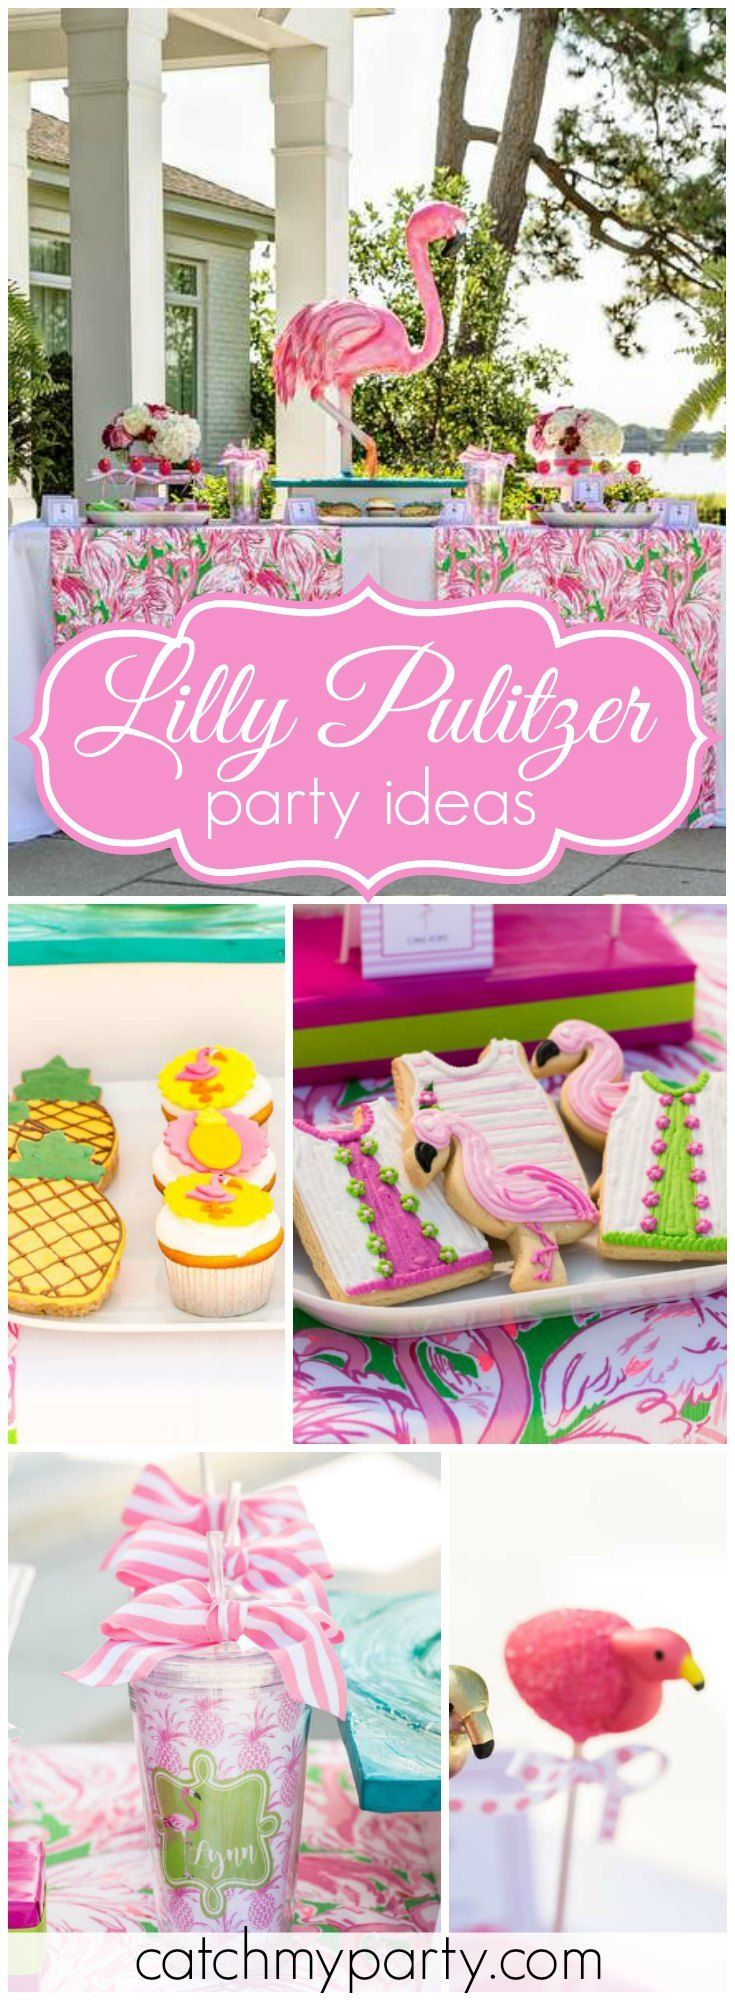 You have to see this gorgeous Lilly Pulitzer bridesmaid luncheon! See more party ideas at Catchmyparty.com!